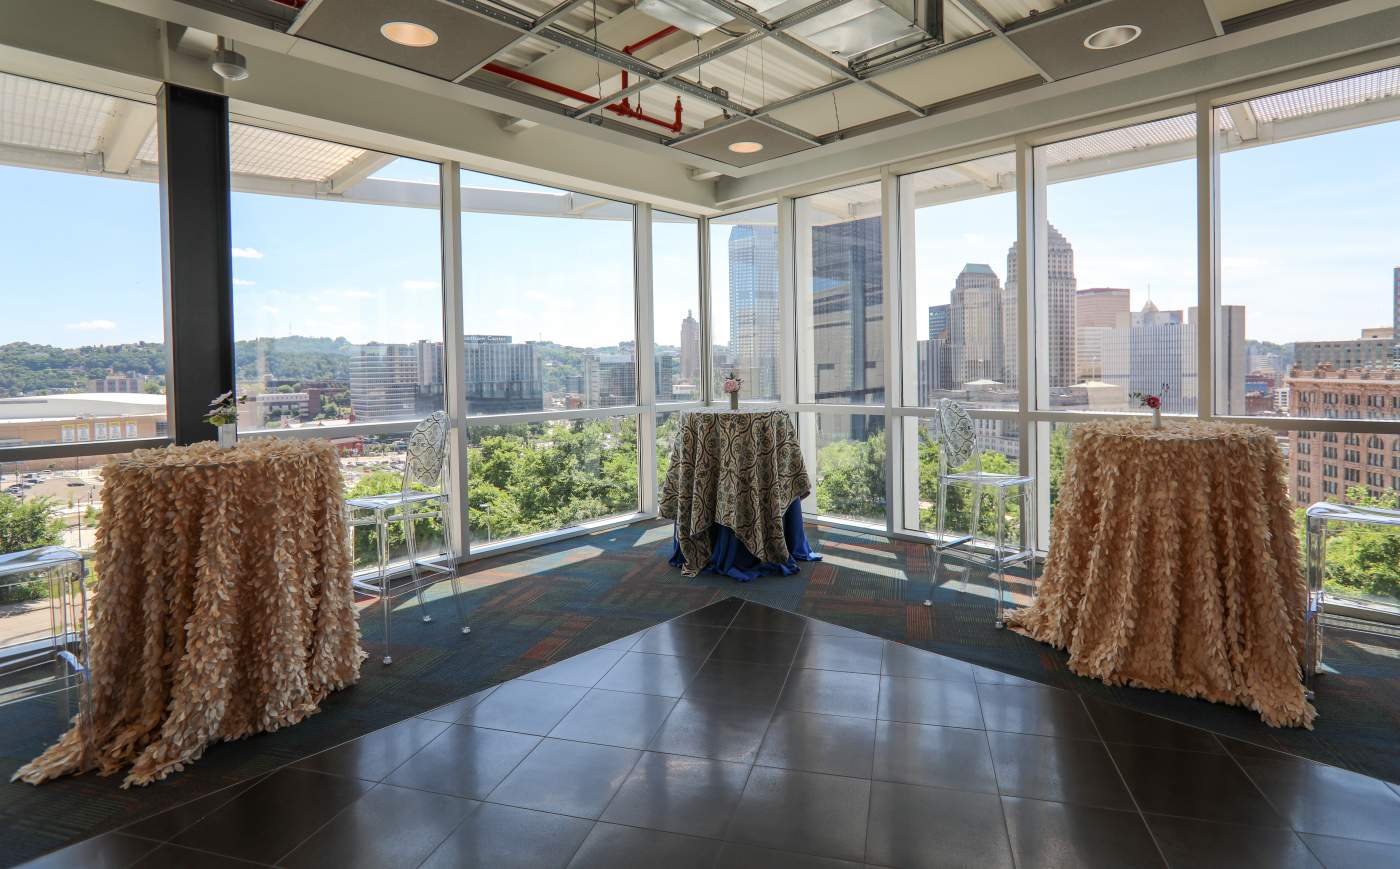 Energy Innovation Center EIC Glass Elevator Pittsburgh Wedding Venue  Jessica Garda Events.jpg